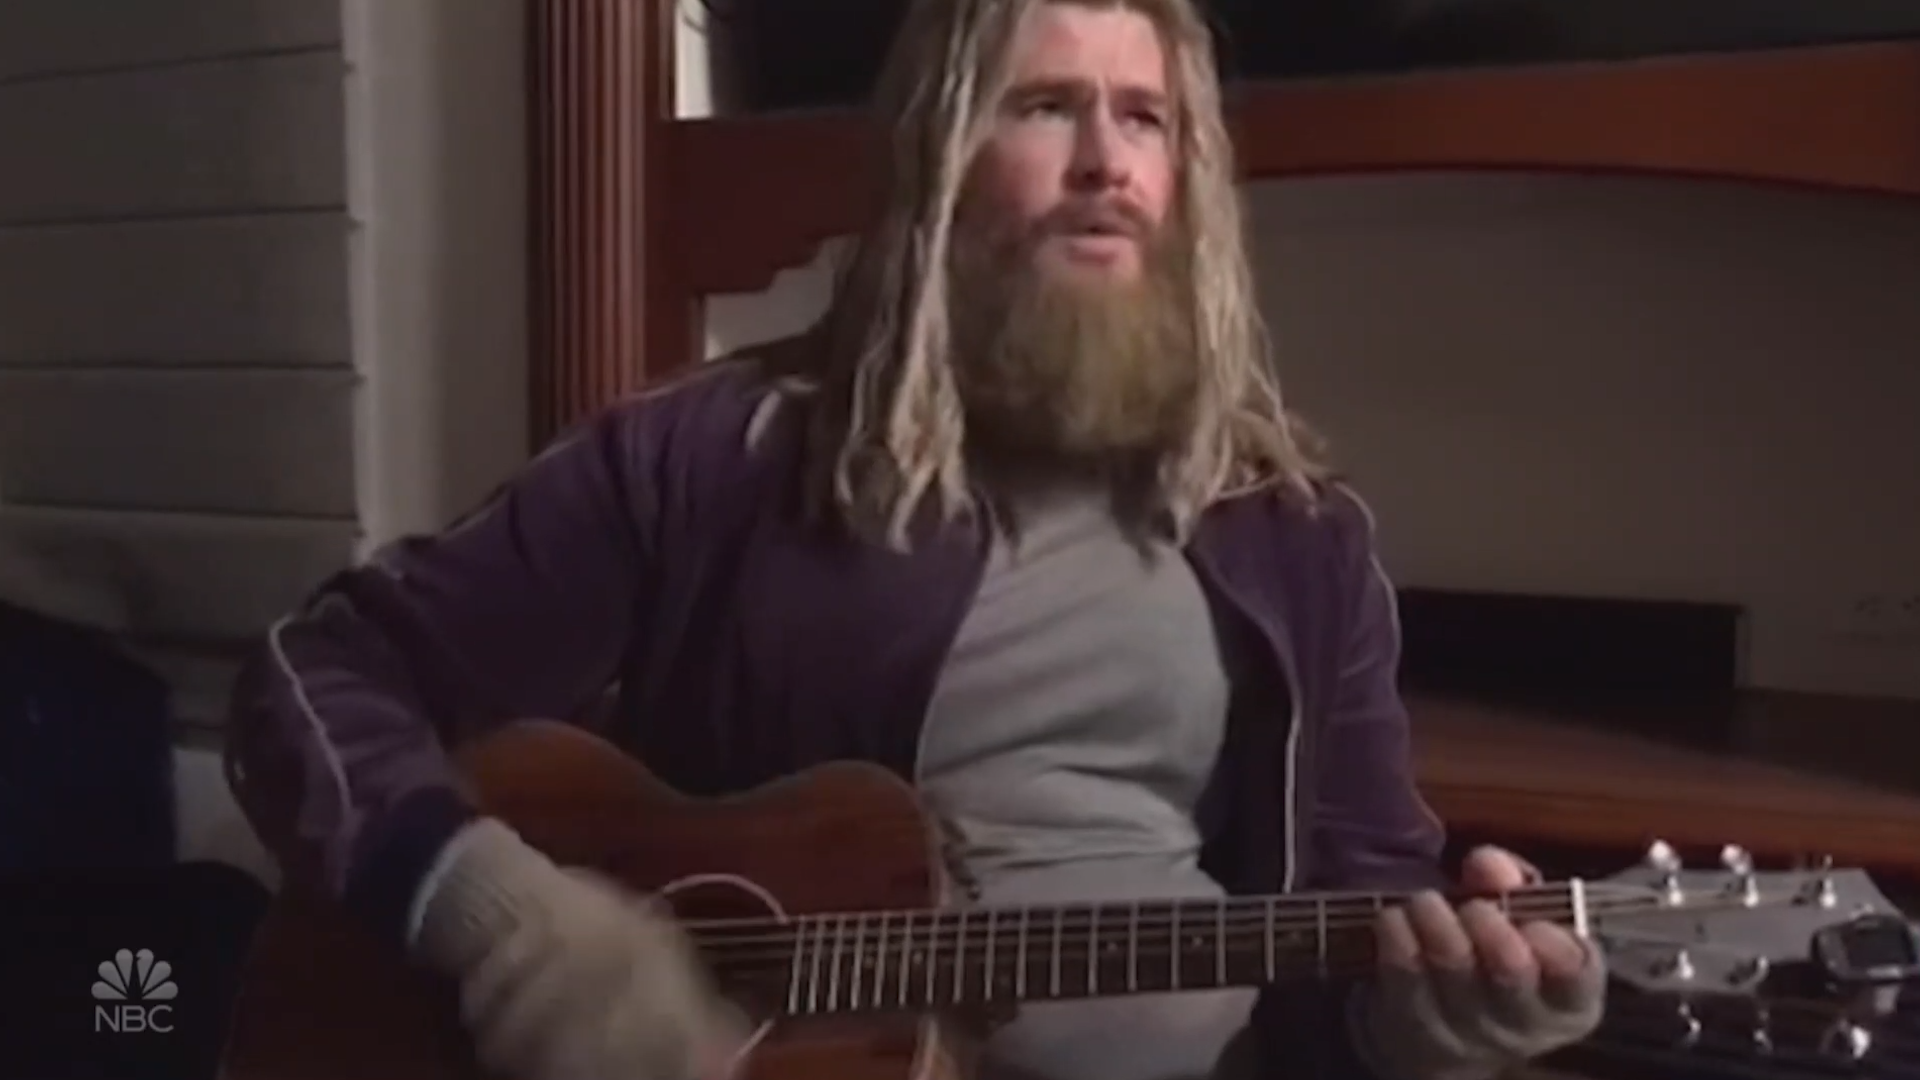 Chris Hemsworth debuts hilarious video of 'Fat Thor' performing Johnny Cash